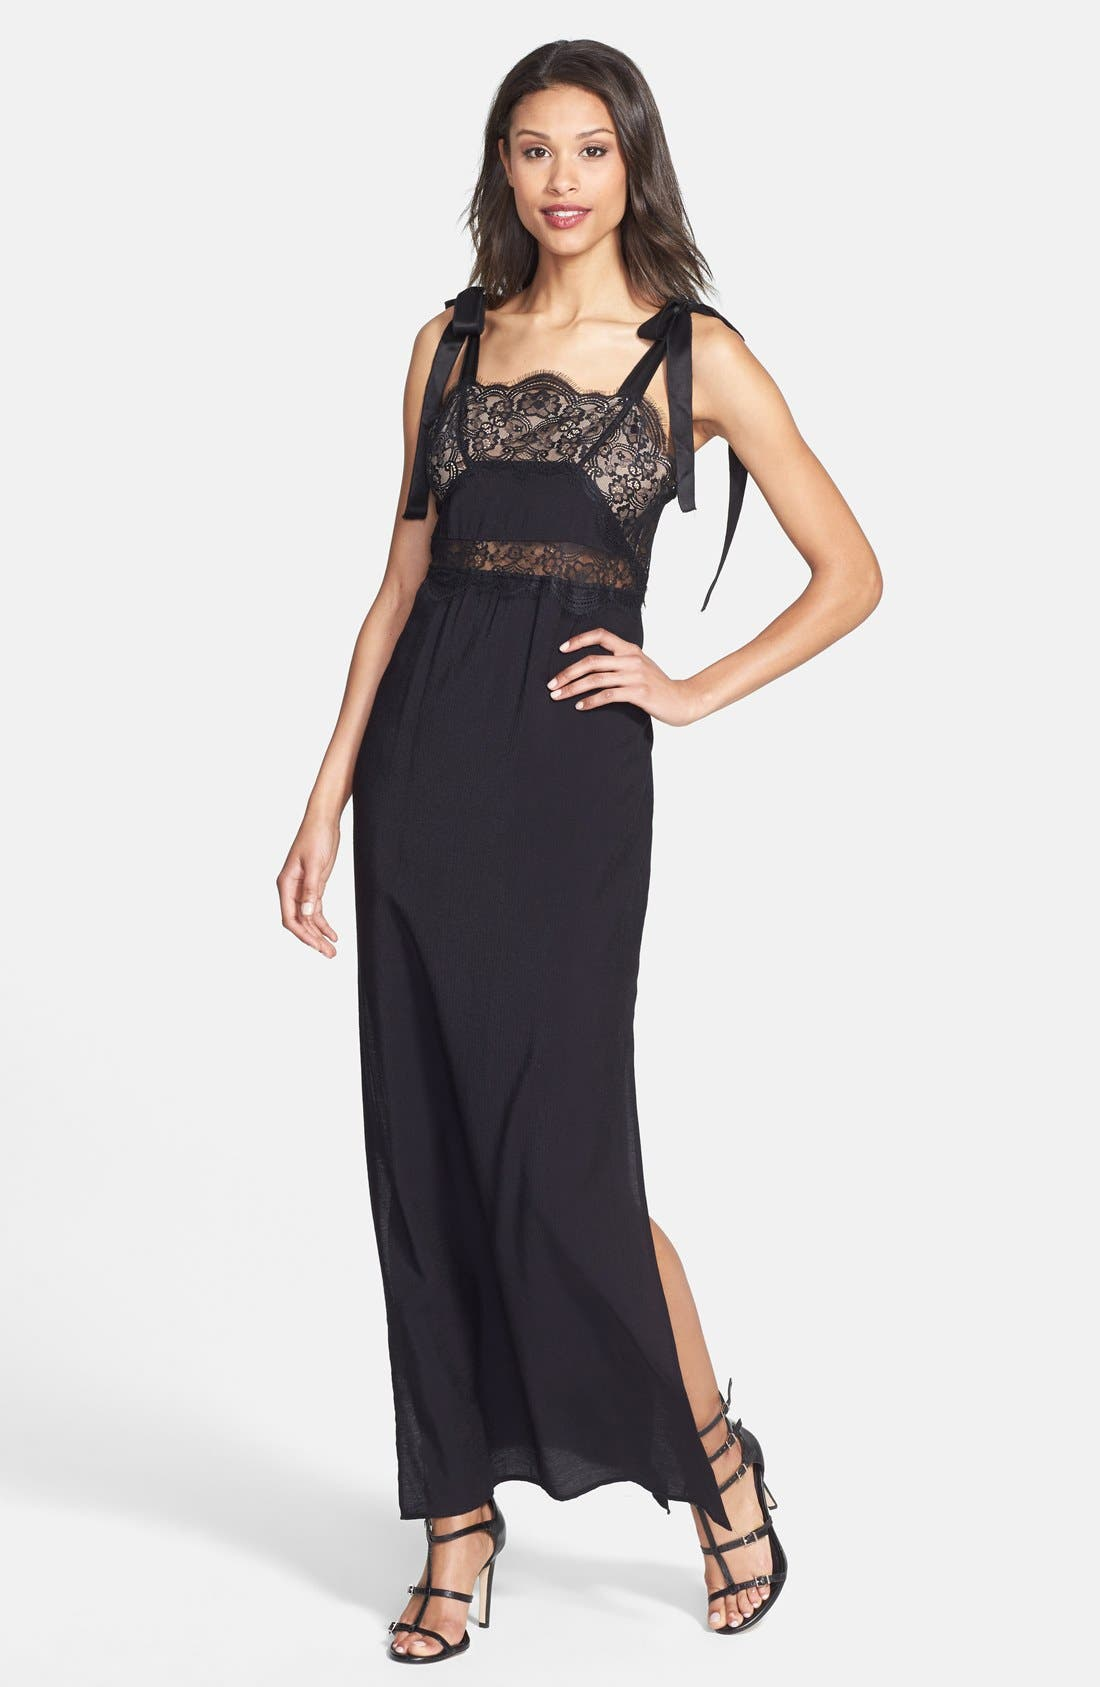 Main Image - For Love & Lemons 'Sweet Tea' Lace Trim Crepe Maxi Dress